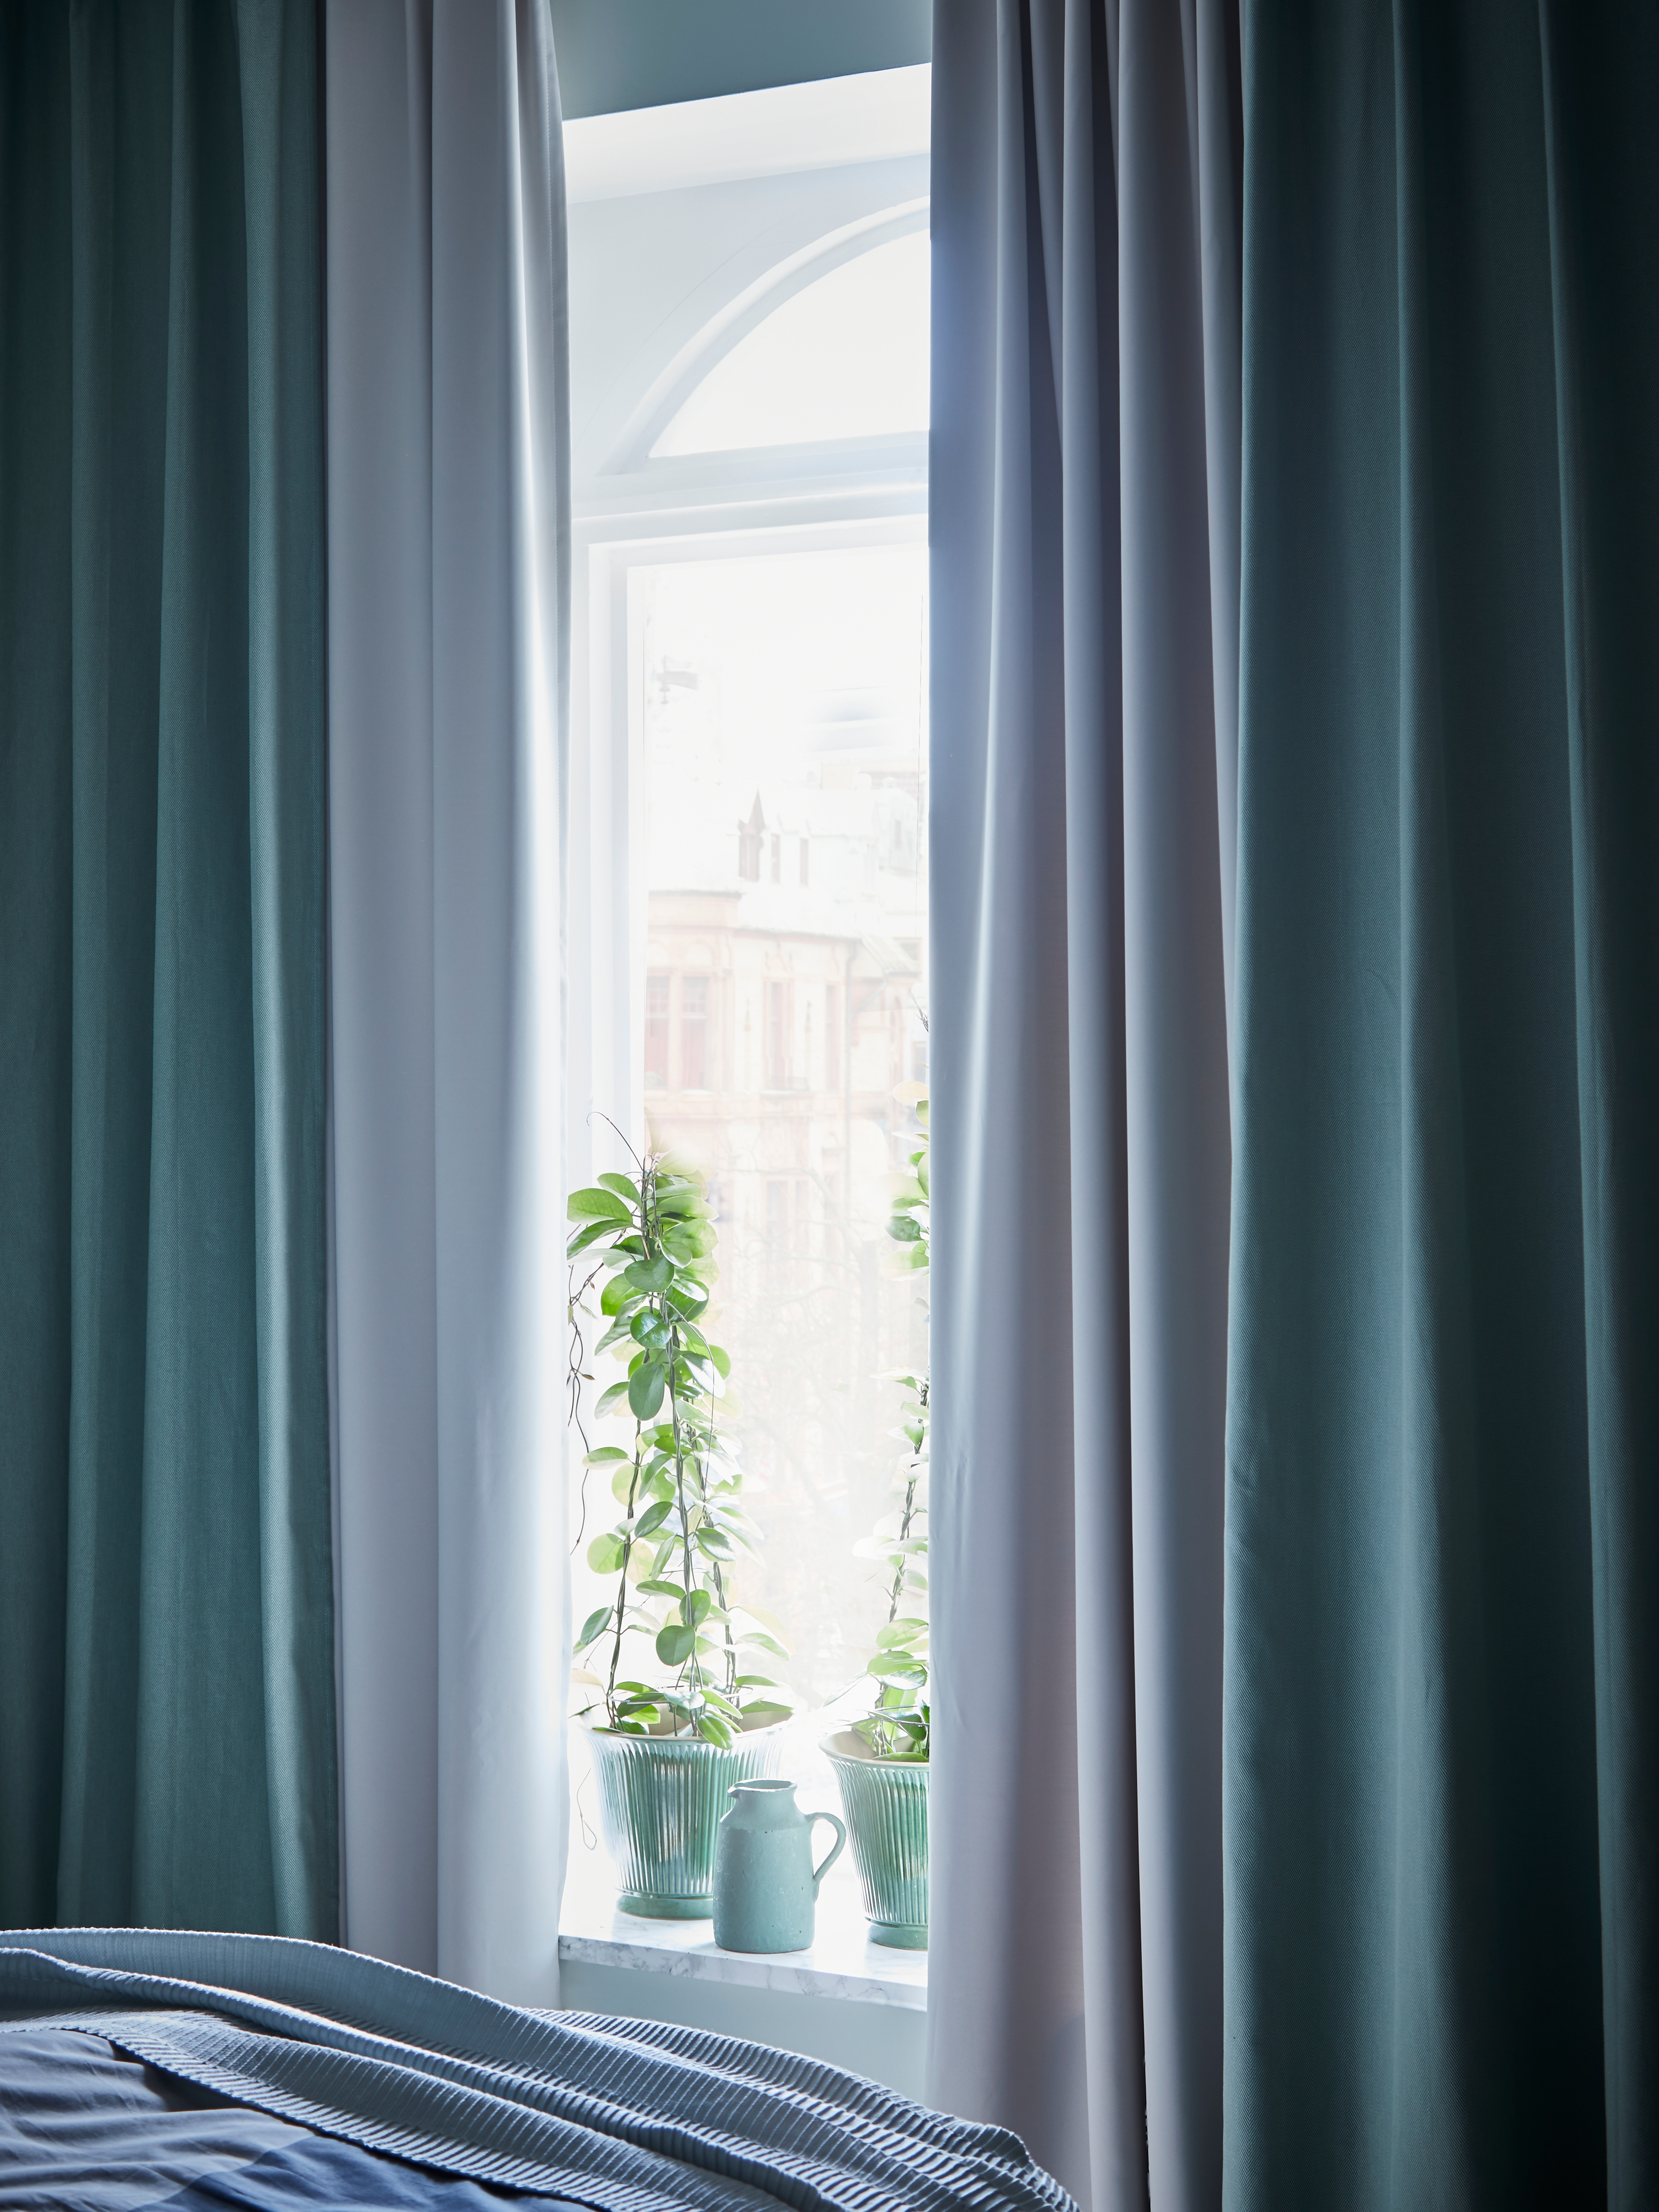 A bedroom window with MAJGUL room darkening curtains in light grey under blue curtains open to show plants in the windowsill.